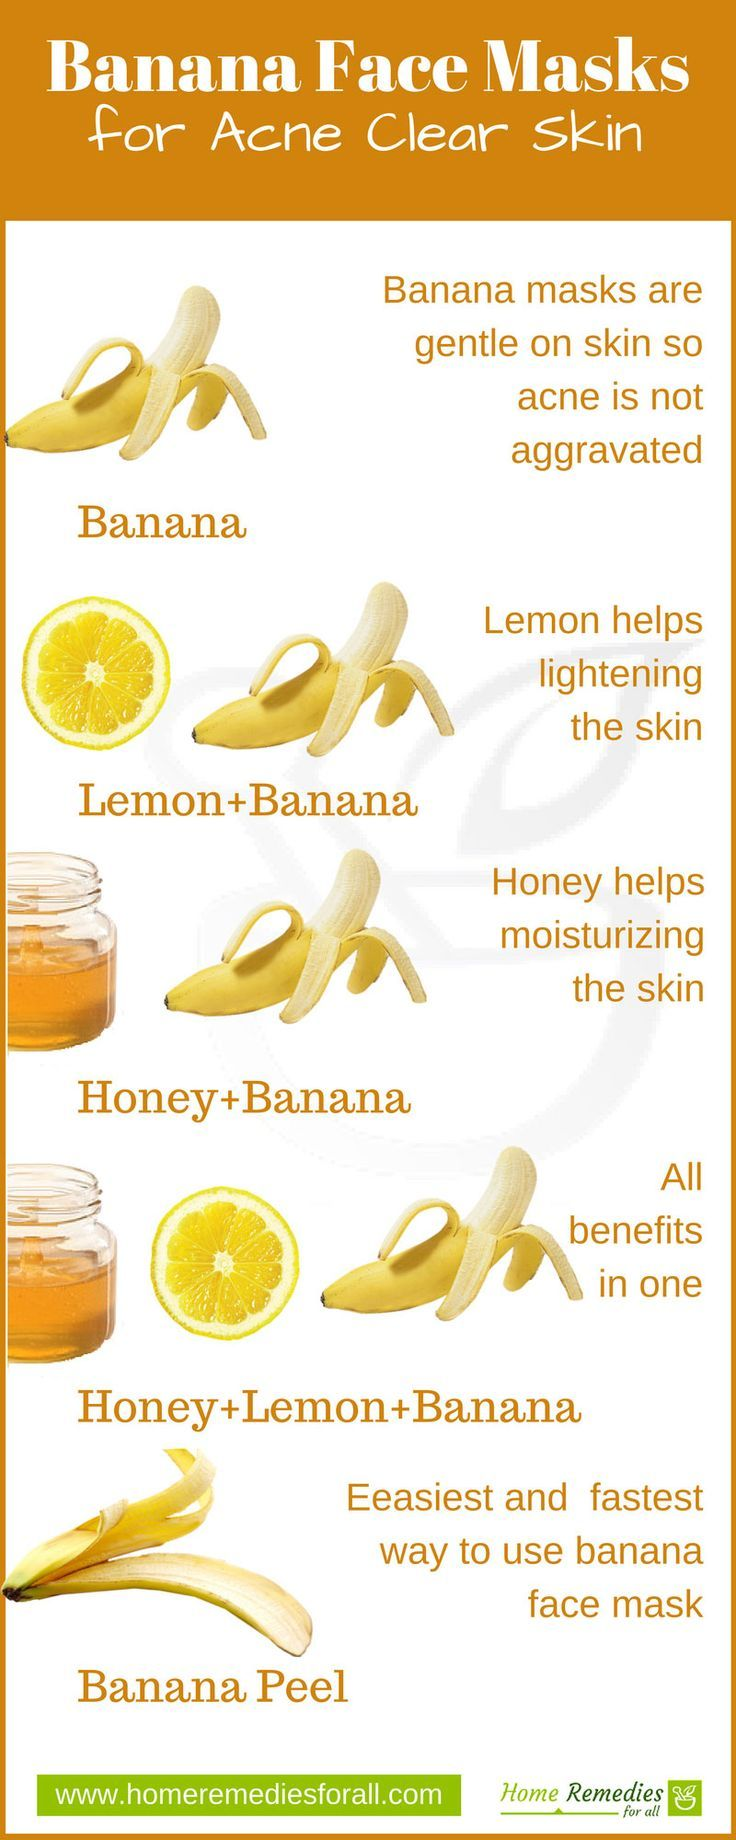 Banana makes some very effective face masks for your skin